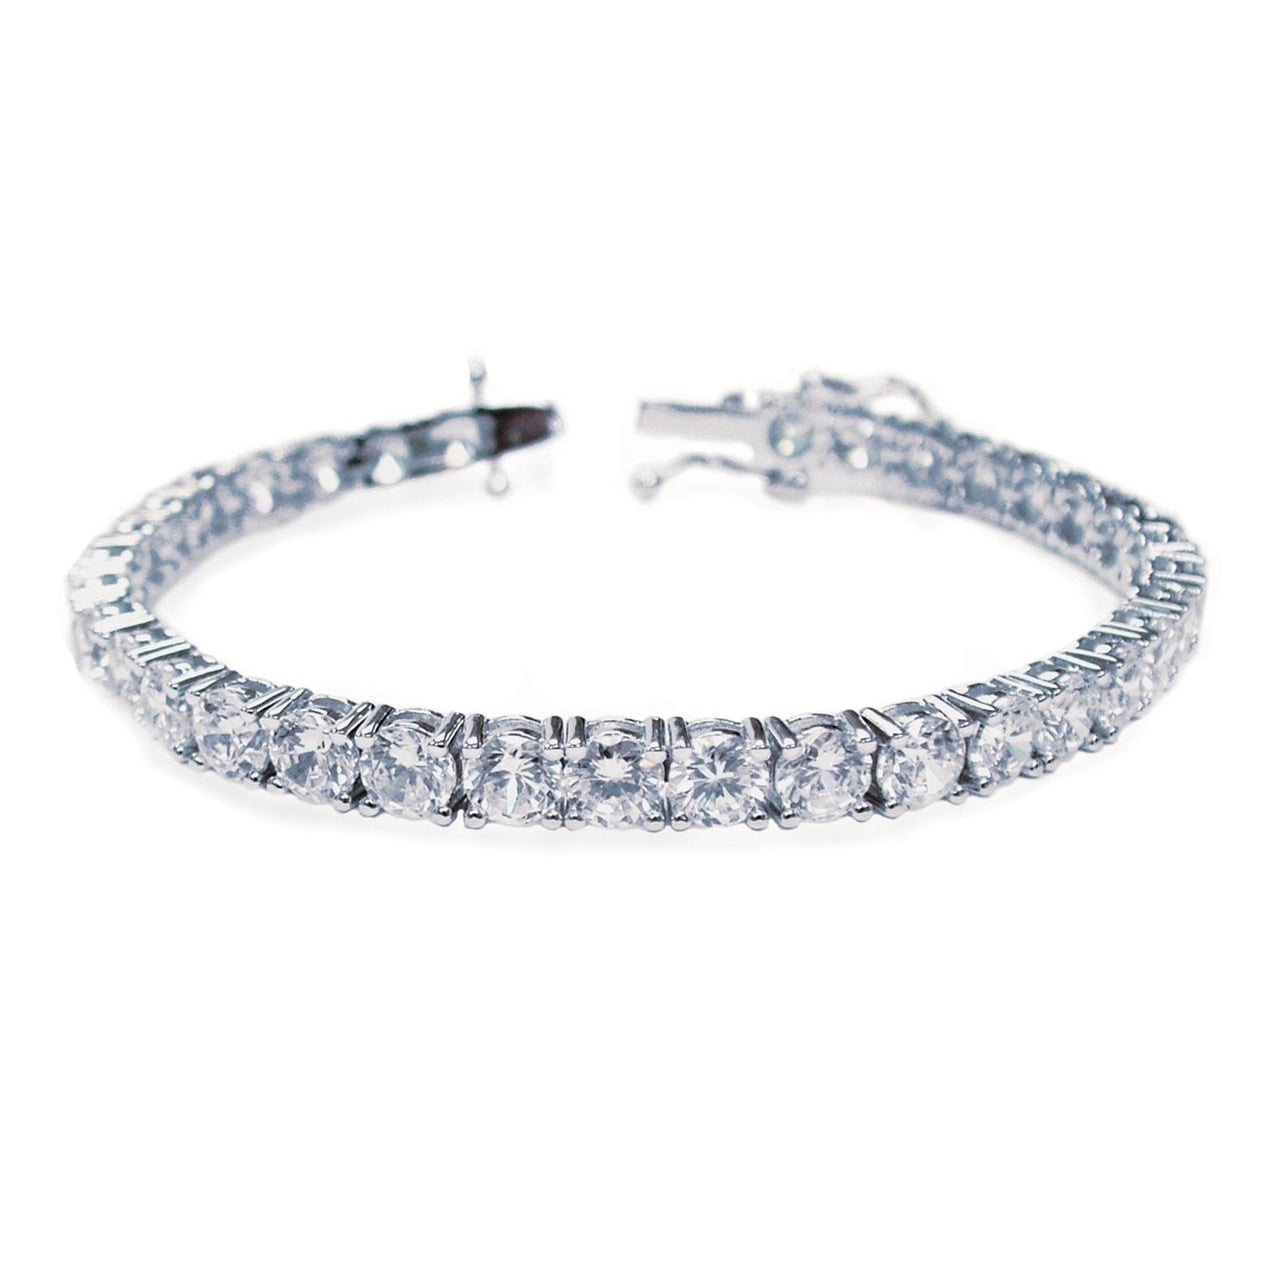 Bracelet de mariée<br>Imperial - MP Paris